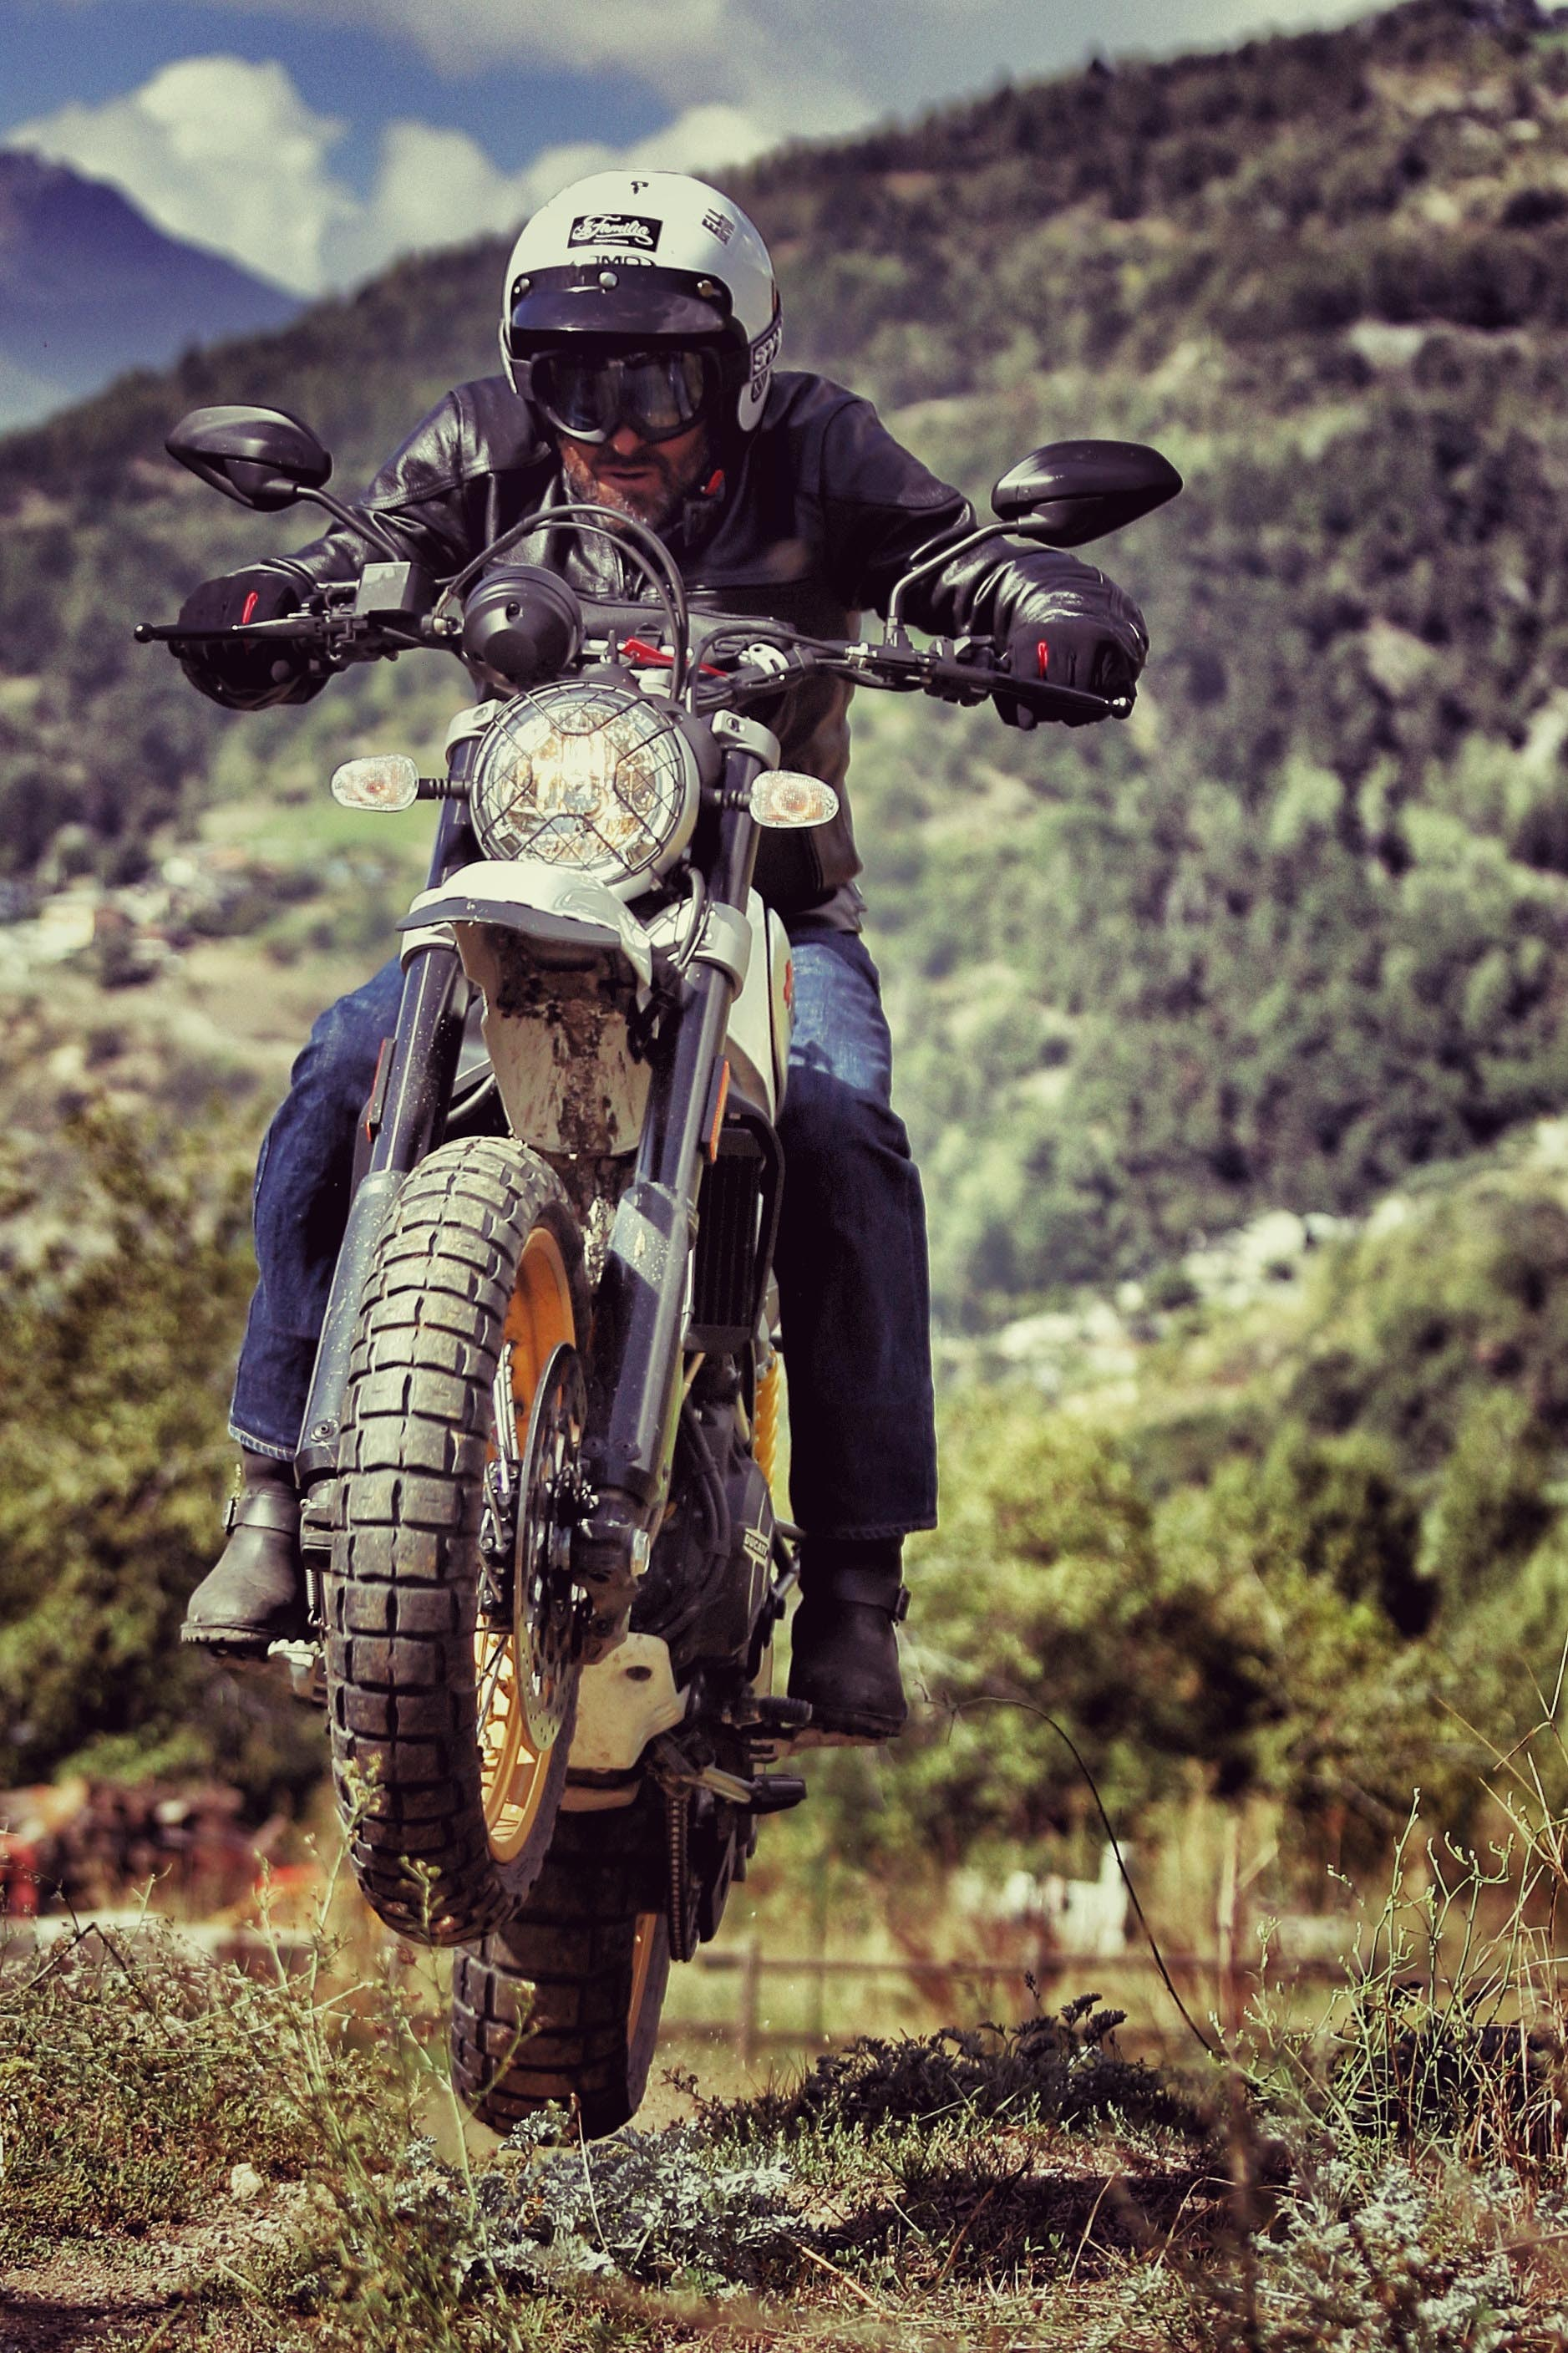 close-up photography of man riding motorcycle during daytime